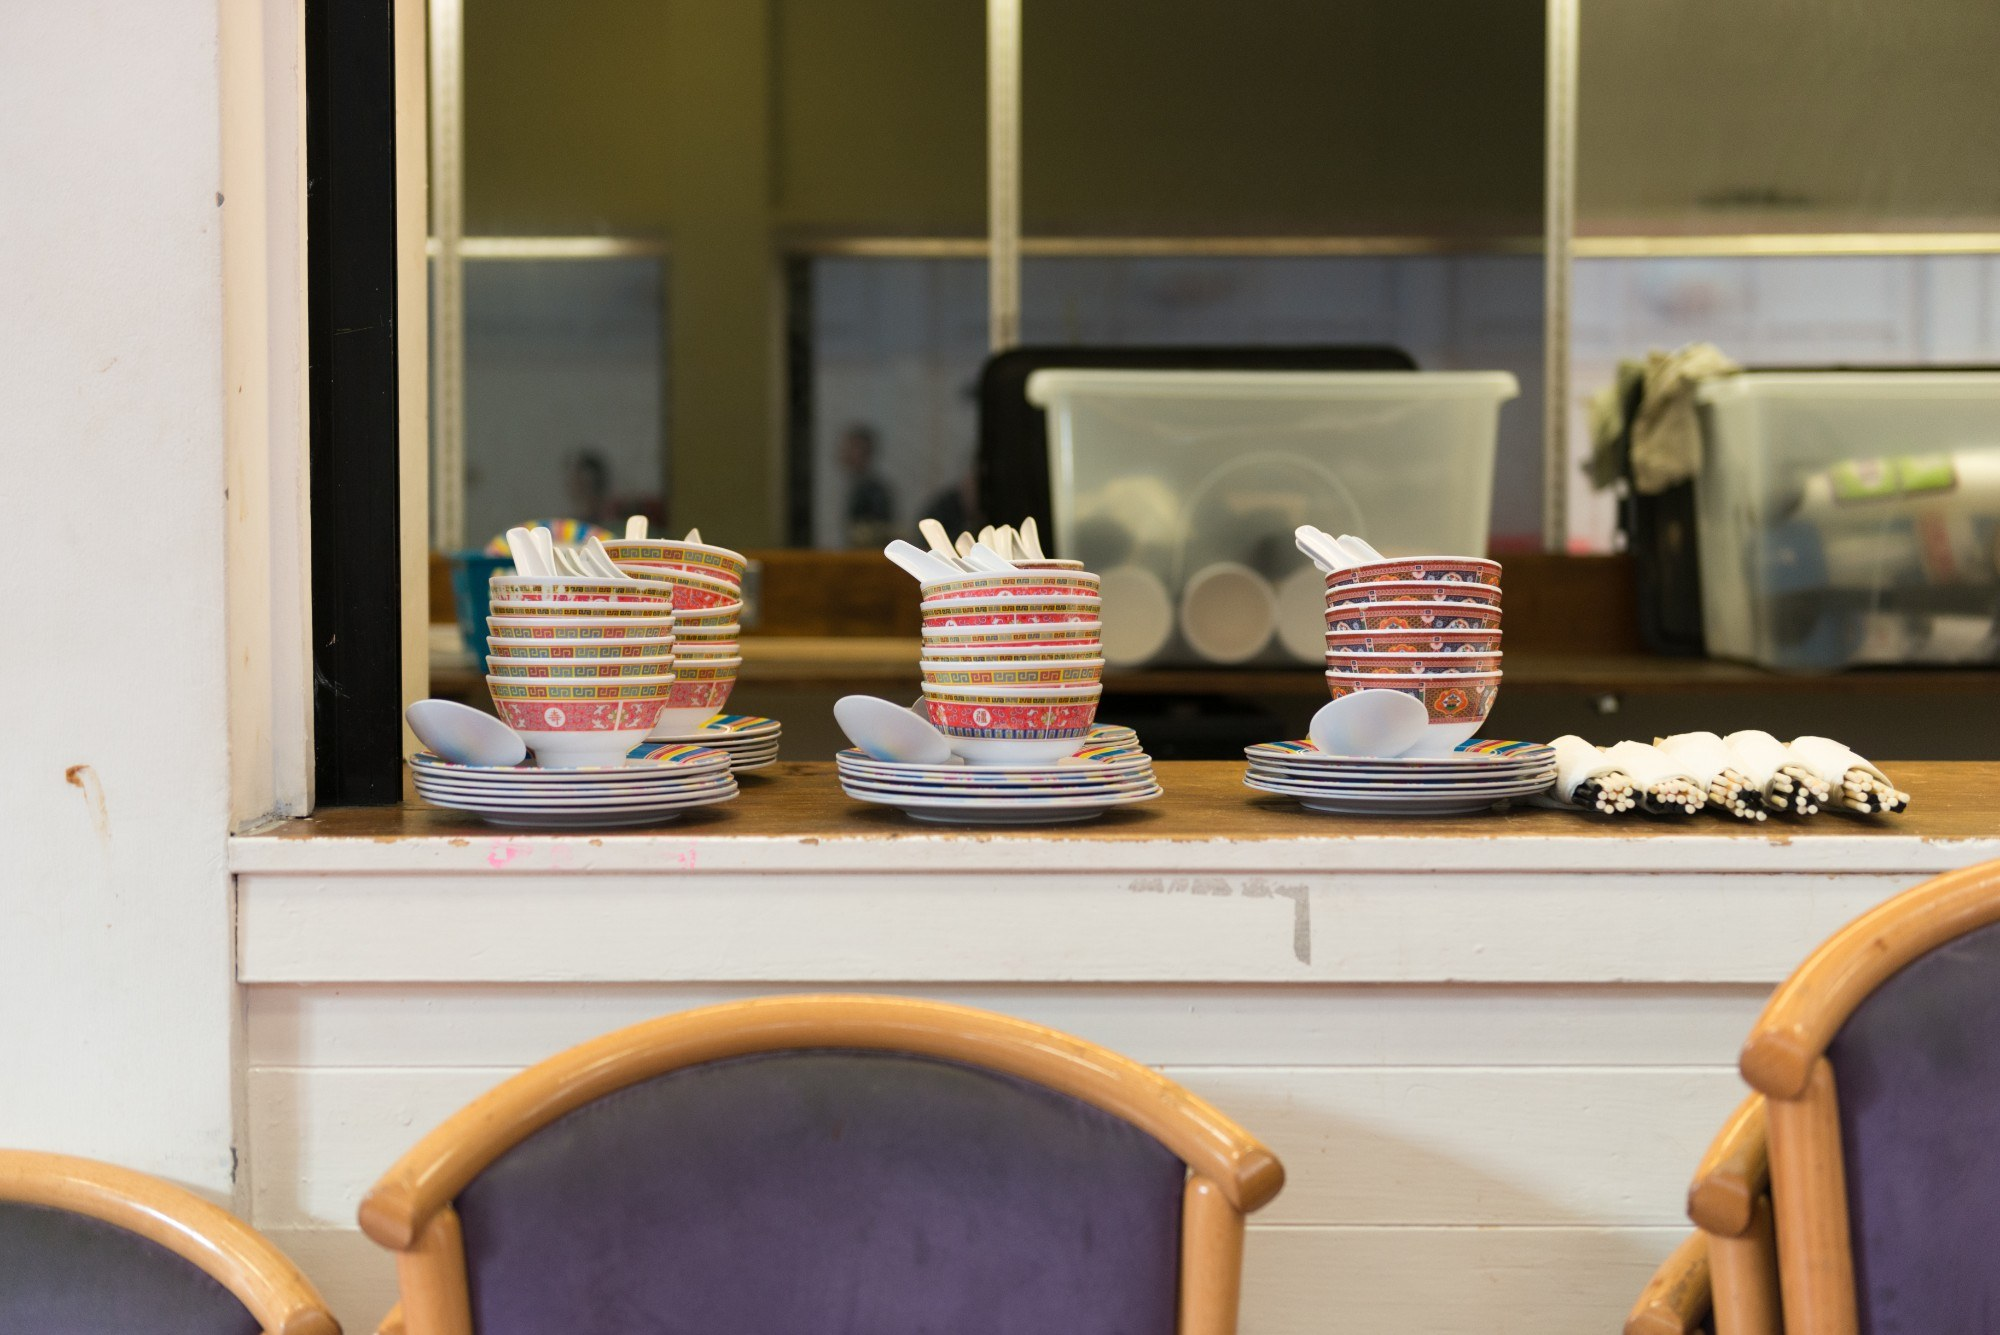 Piles of bowls lined up on a counter